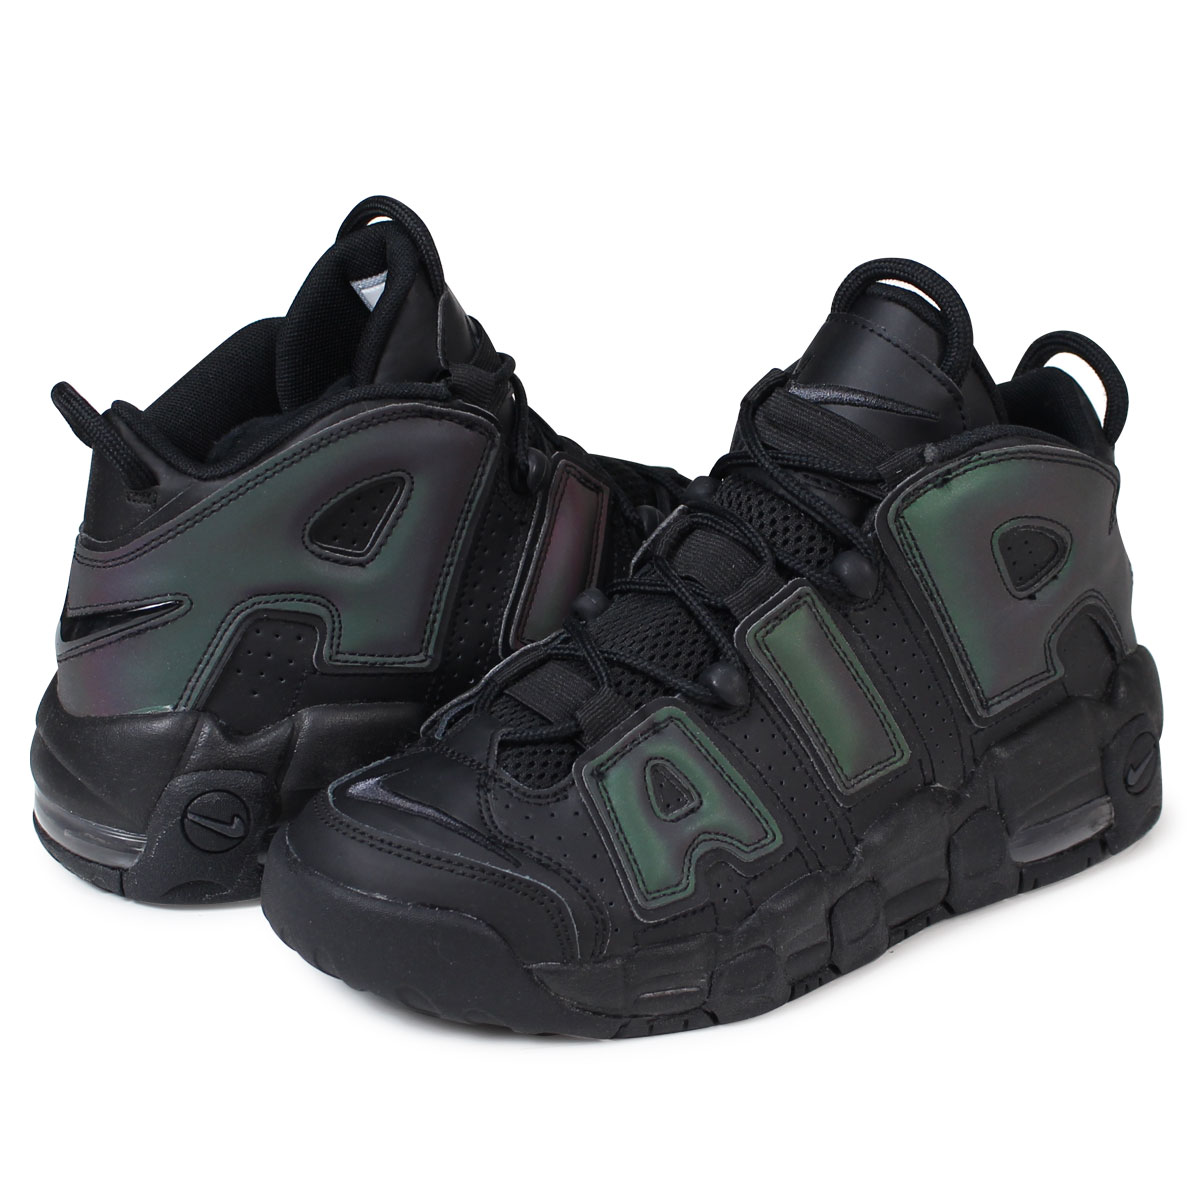 742da29330 NIKE AIR MORE UPTEMPO SE GS Nike air more up tempo Lady's sneakers  922,845-001 ...